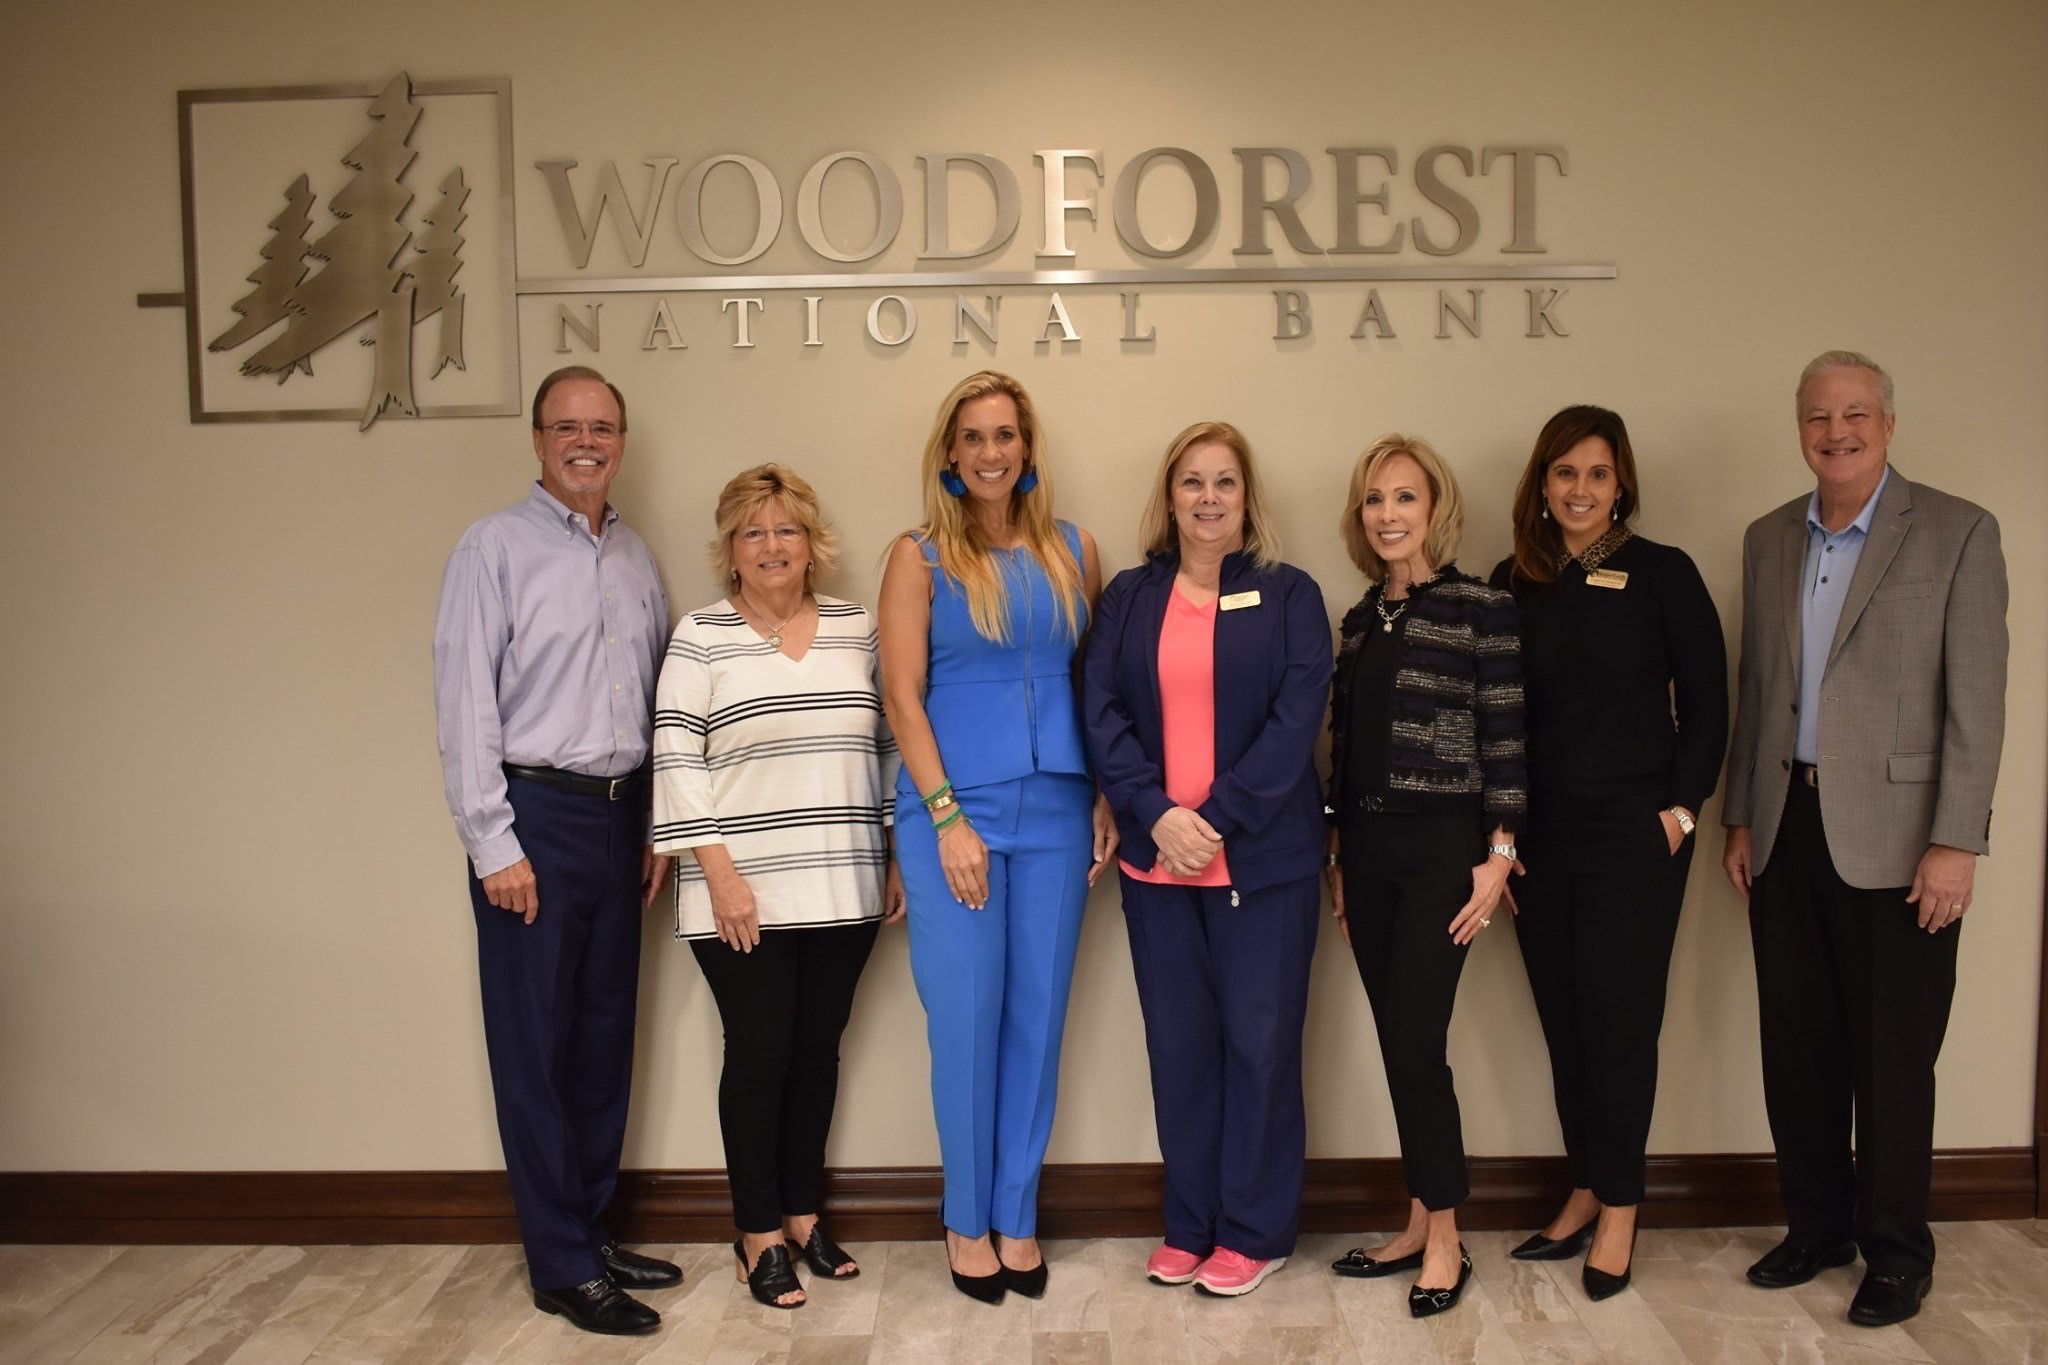 Woodforest Charitable Foundation recently donated $10,000 to Interfaith Community Clinic